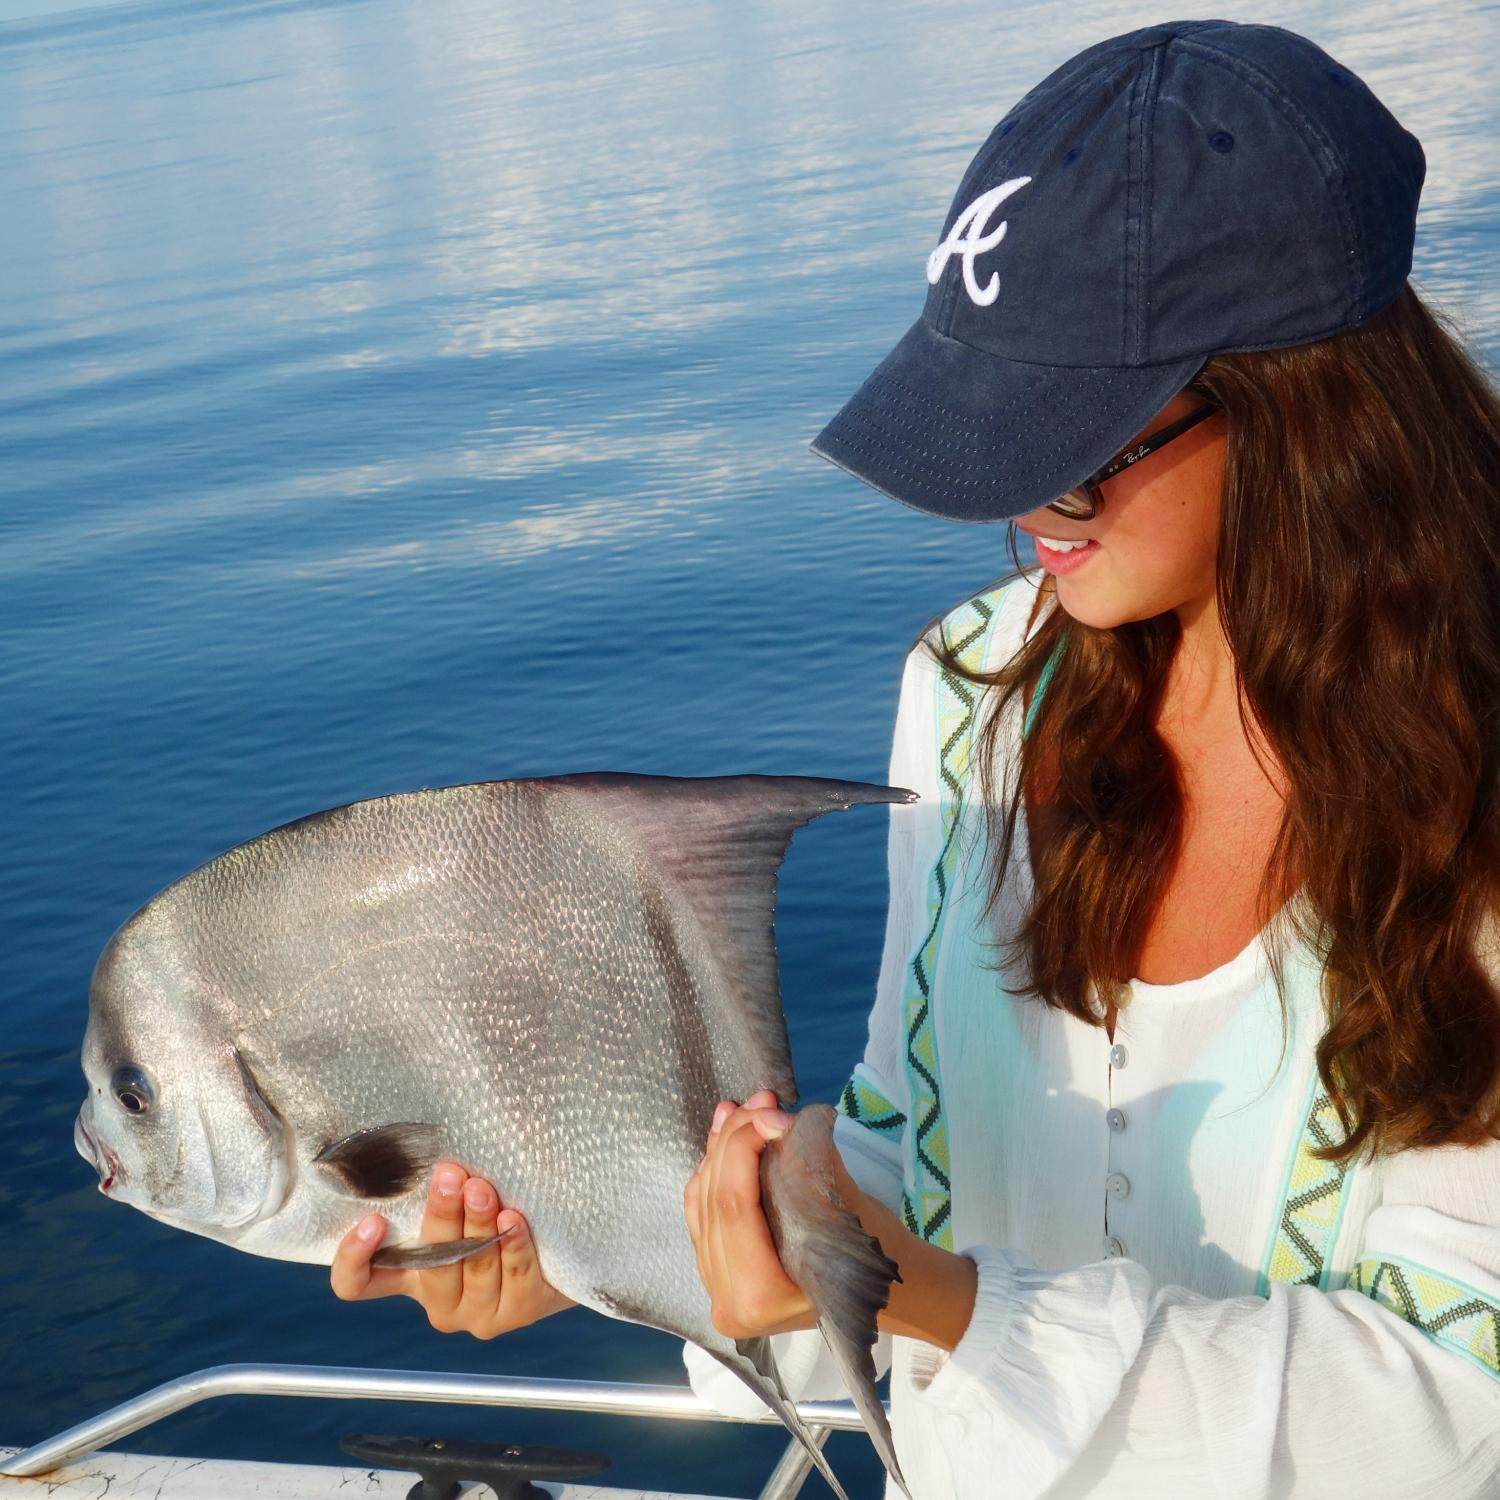 Ocean Fly Fishing Charter - Larger Fish Species of Charleston